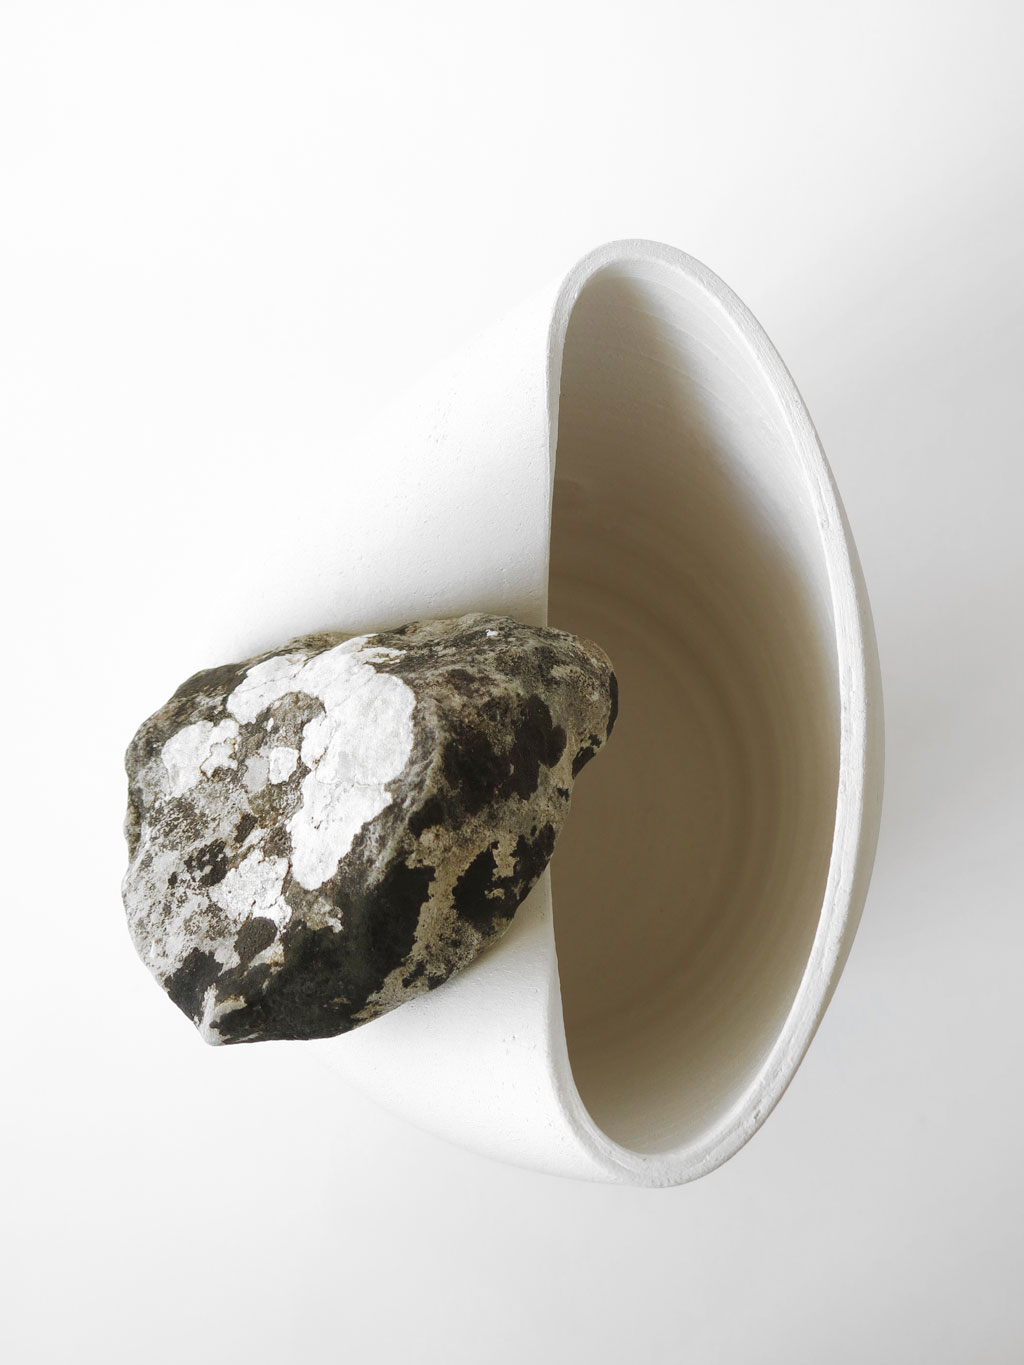 vase-for-live-stones-numbered-martin-azua-02